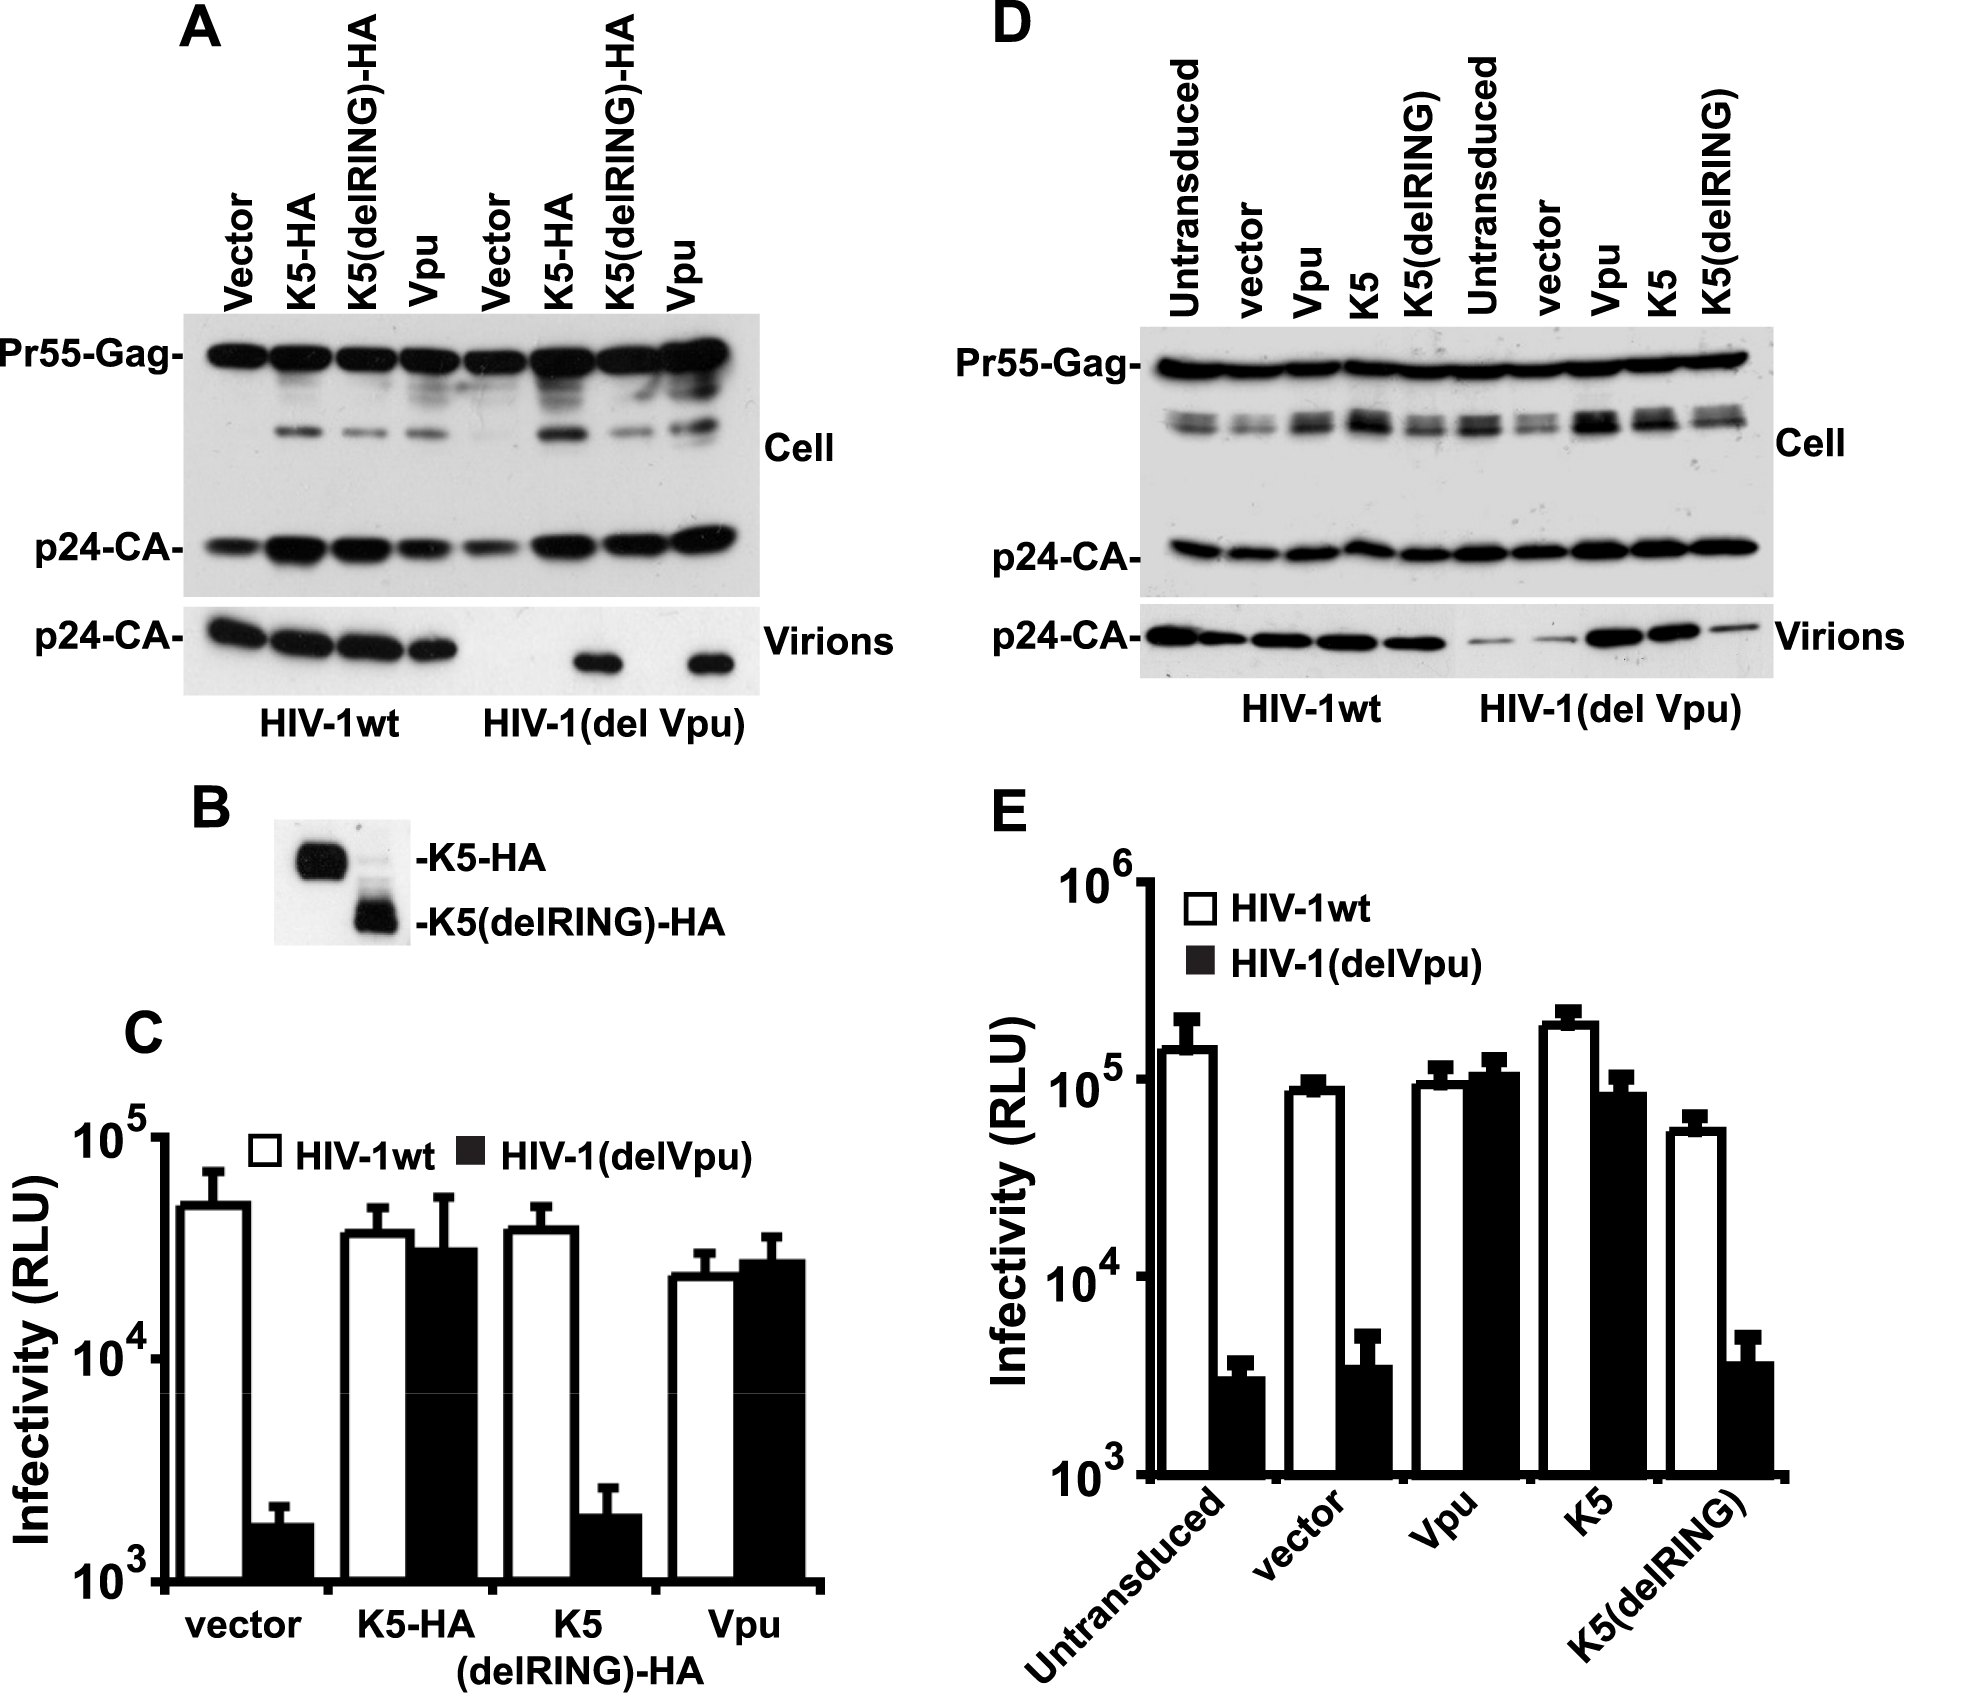 K5 rescues Vpu-defective HIV-1 particle release from tetherin mediated restriction.